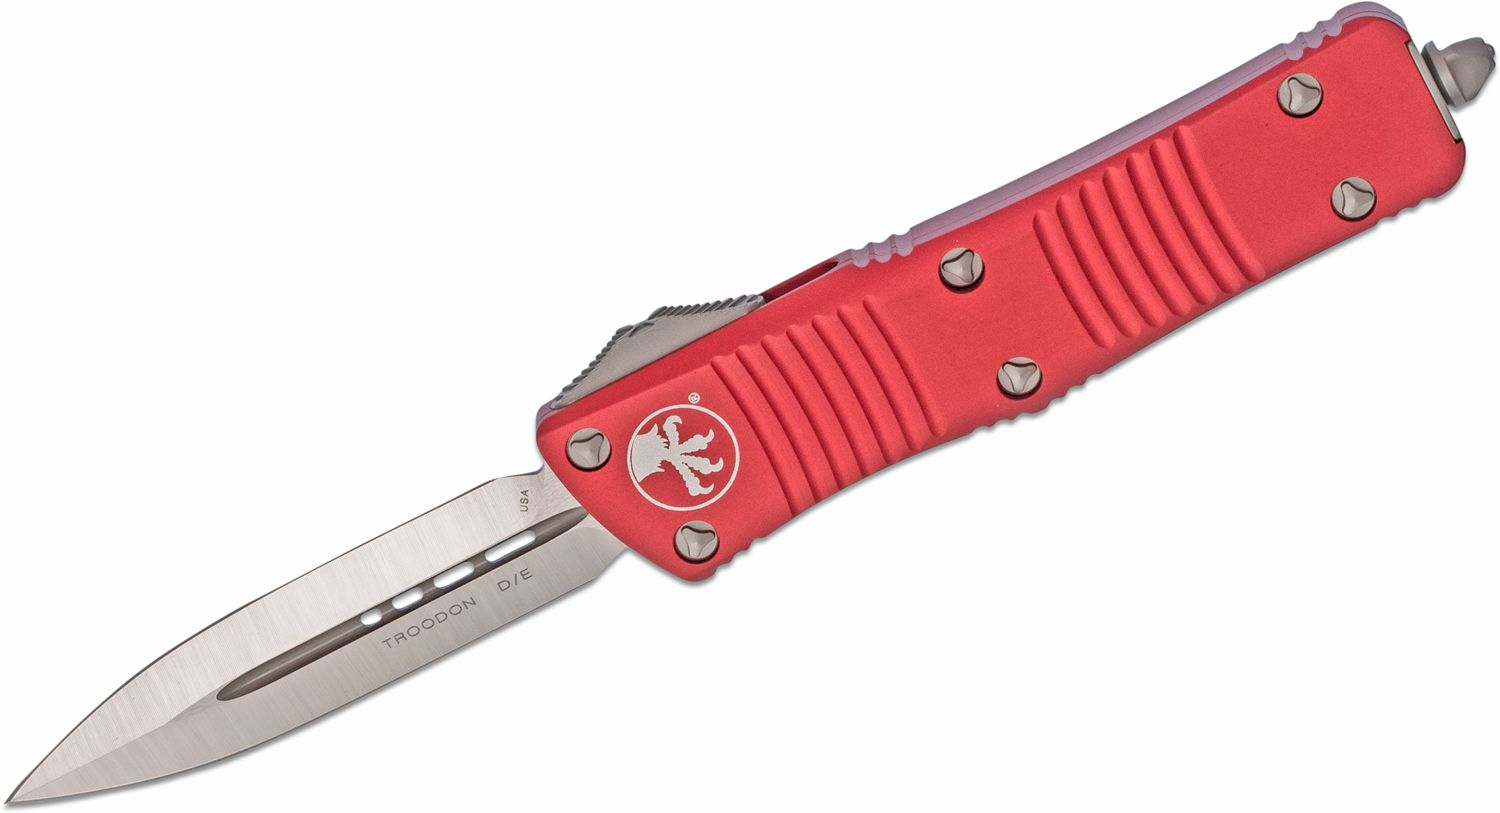 Microtech 138-4RD Troodon AUTO OTF Knife 3.06 inch Satin Double Edge Dagger Blade, Red Aluminum Handles